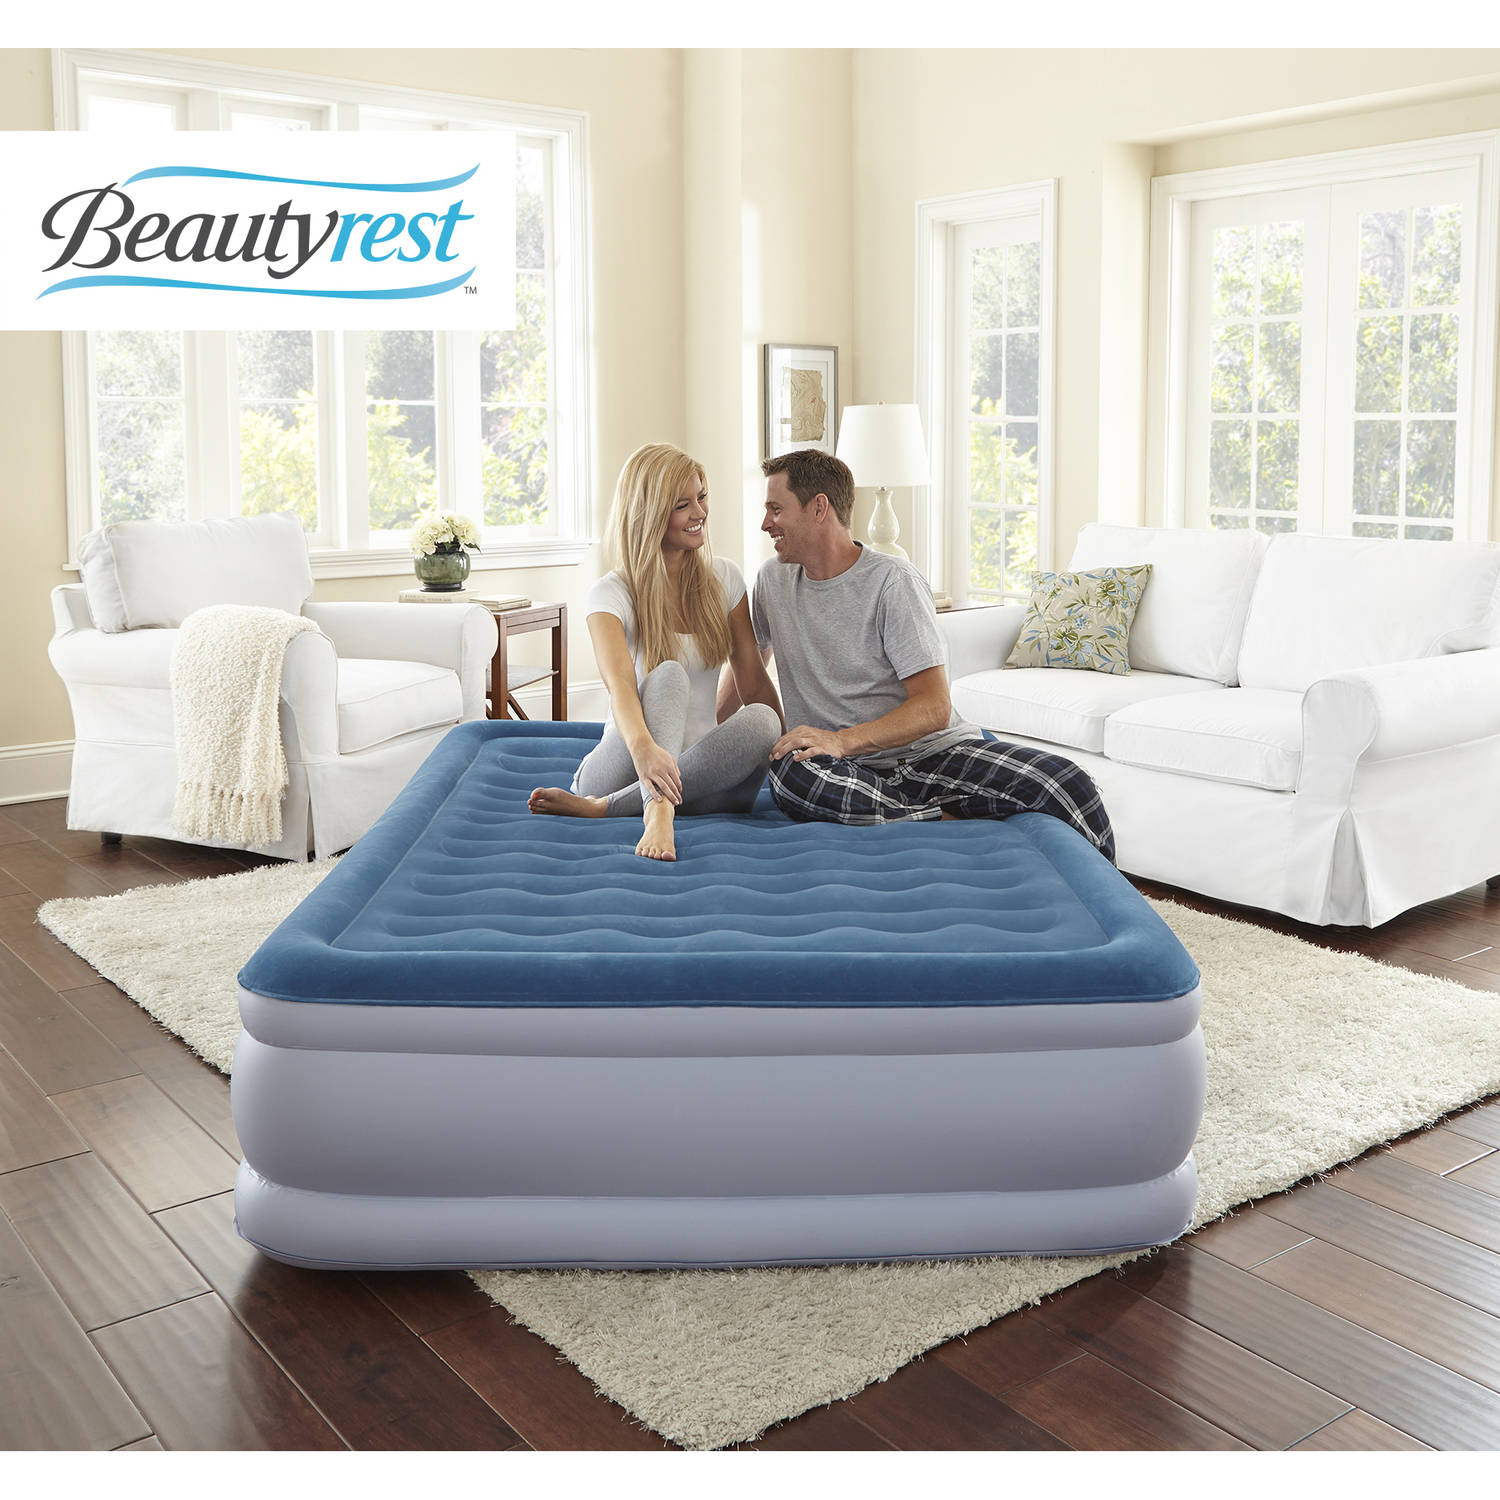 Simmons Beautyrest Extraordinaire Raised Air Bed Mattress with iFlex Support and Built-in Pump, Multiple Sizes - Walmart.com